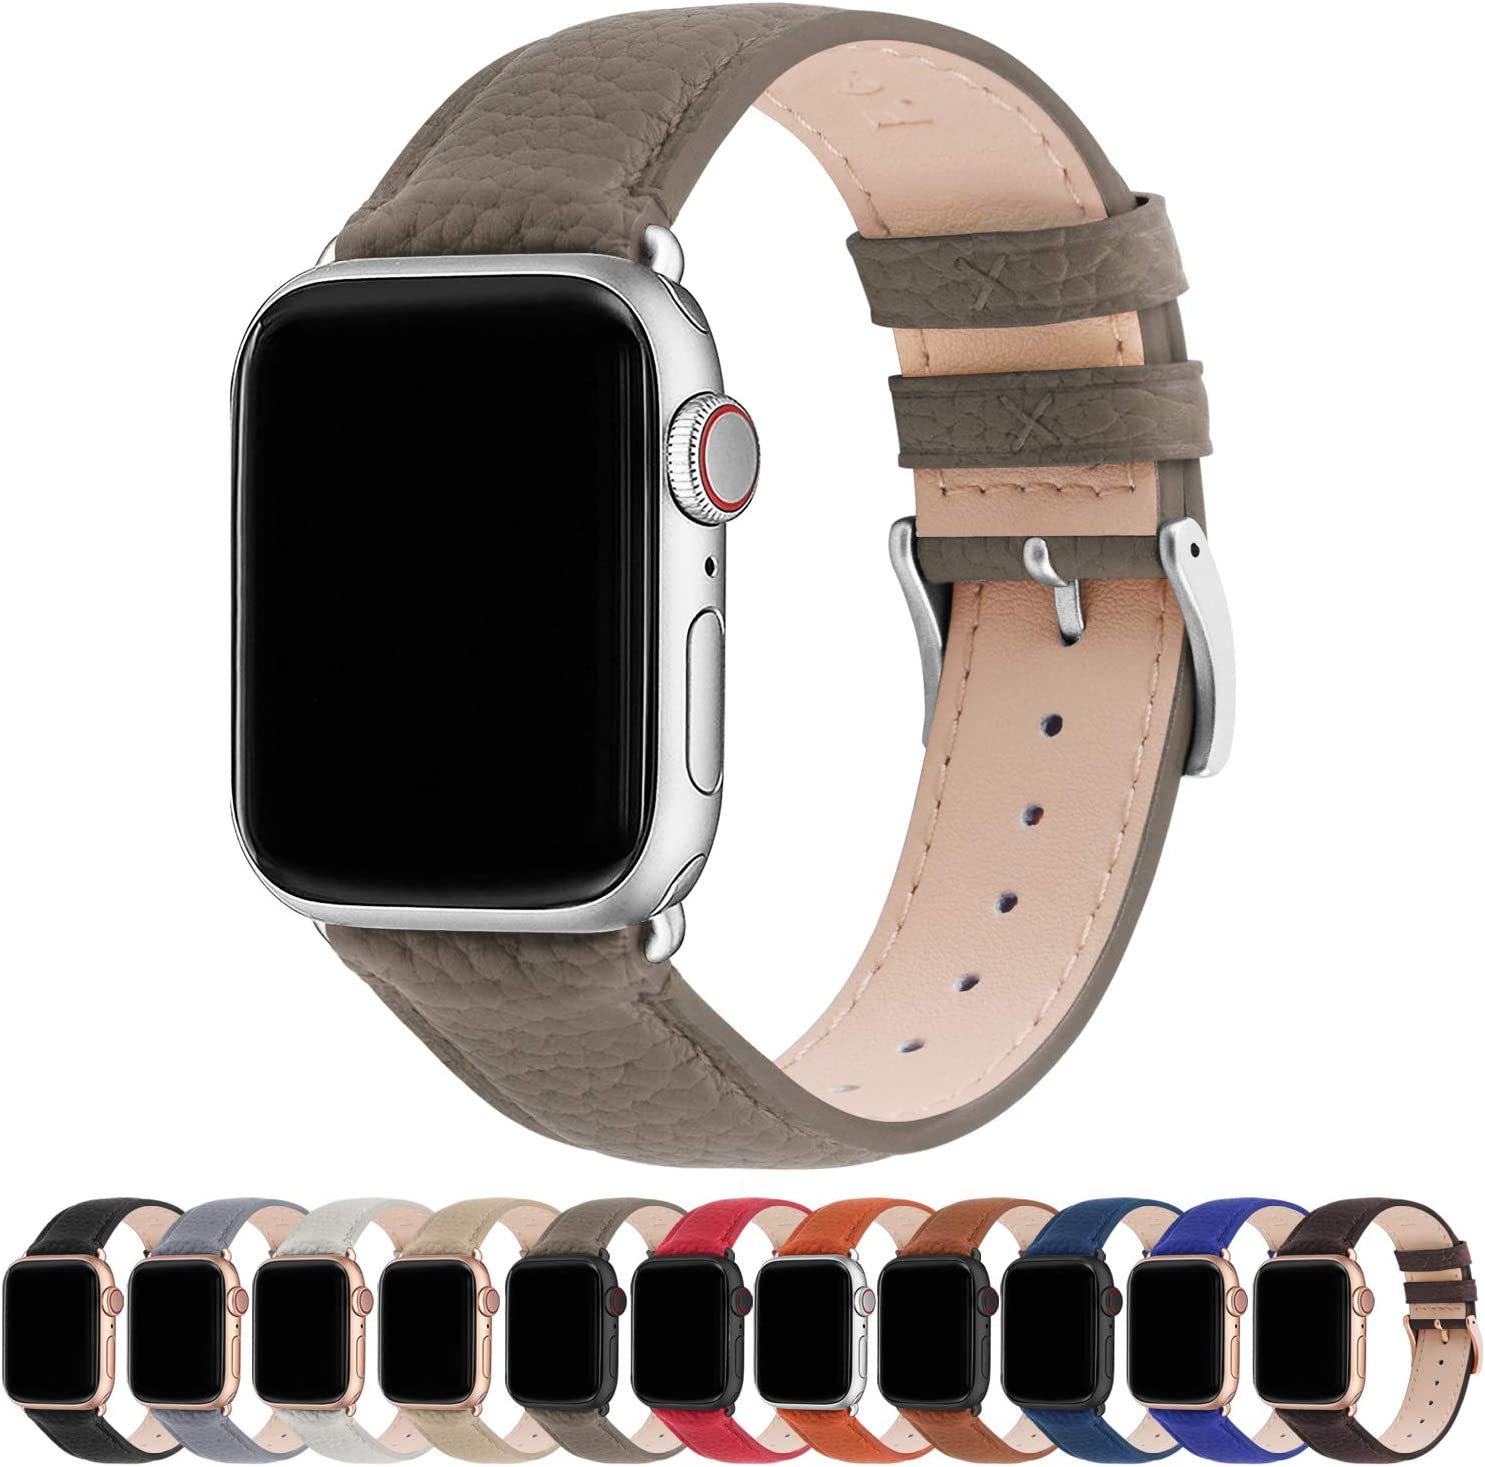 Fullmosa Compatible Apple Watch Band 44mm 42mm 40mm 38mm Leather Compatible iWatch Band/Strap Compatible Apple Watch SE & Series 6 5 4 3 2 1, 38mm 40mm, Elephant Grey + Silver Buckle